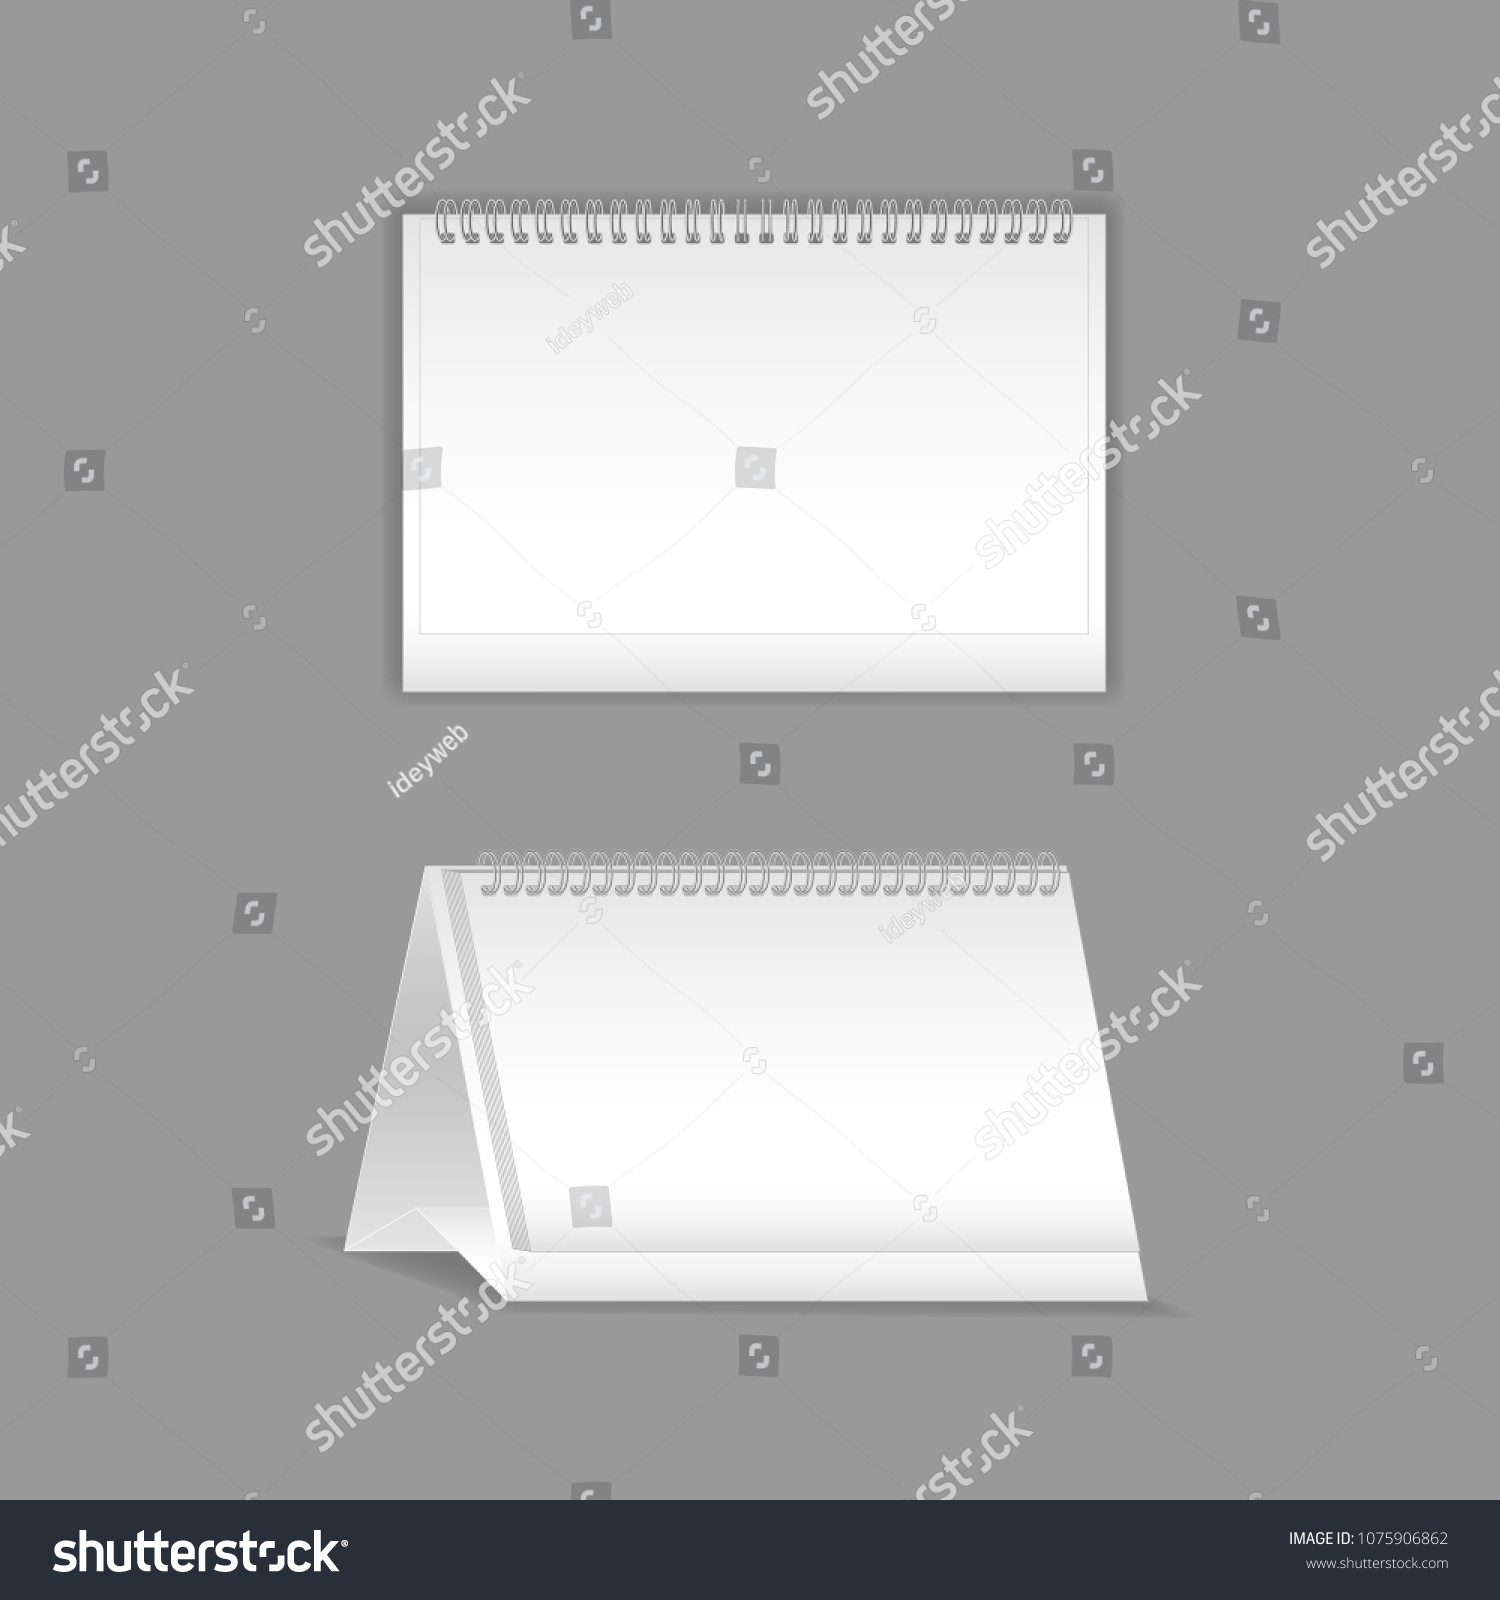 hight resolution of template vector mock up blank table calendar layout realistic notebook organizer